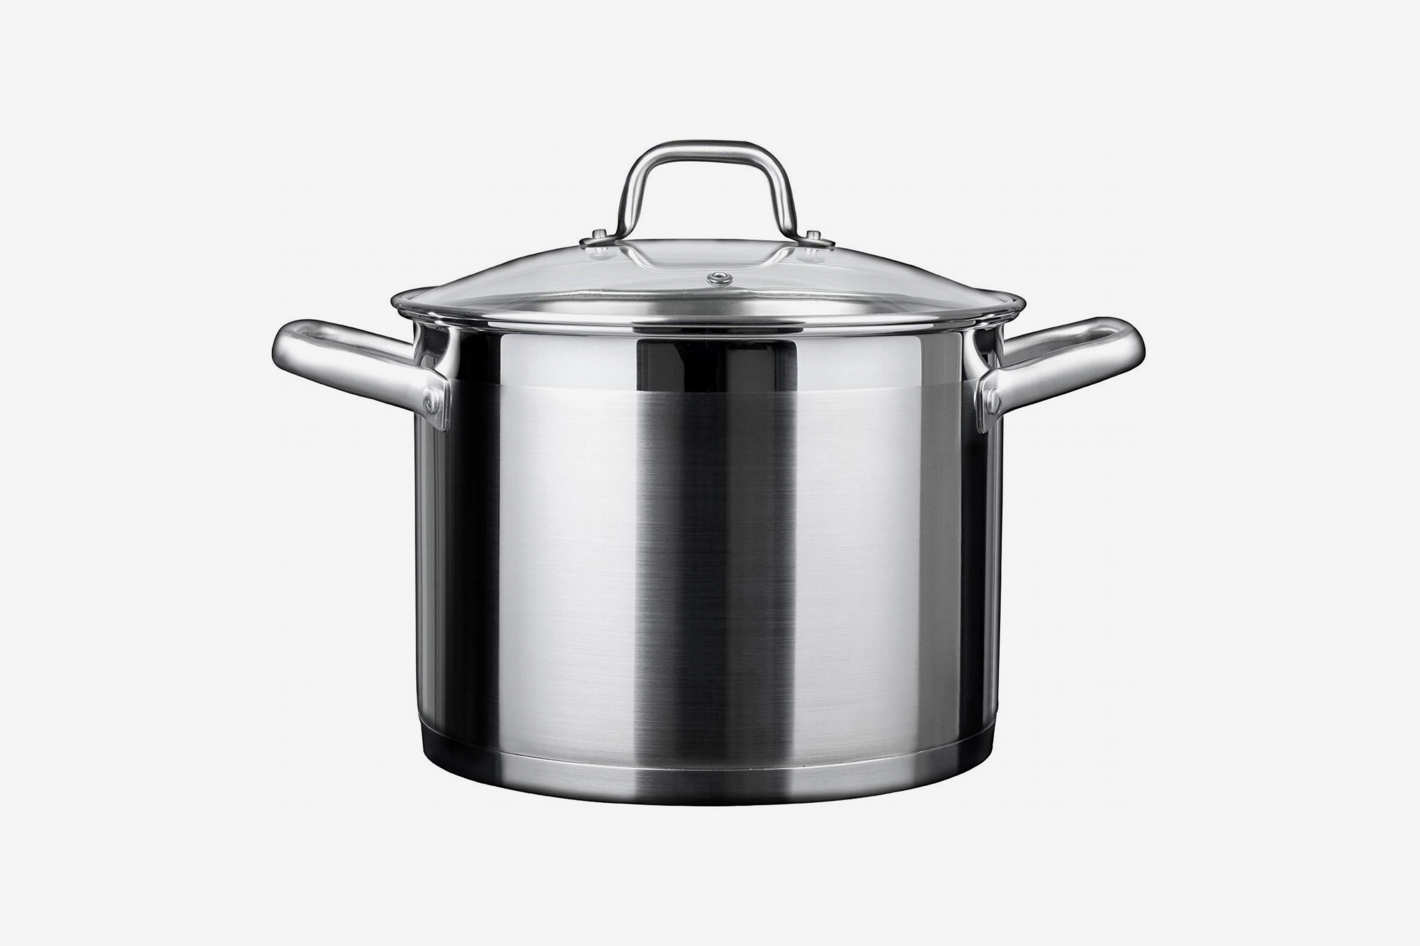 Big W Stock Pot Duxtop Professional Stainless Steel Cookware Induction Ready Impact Bonded Technology